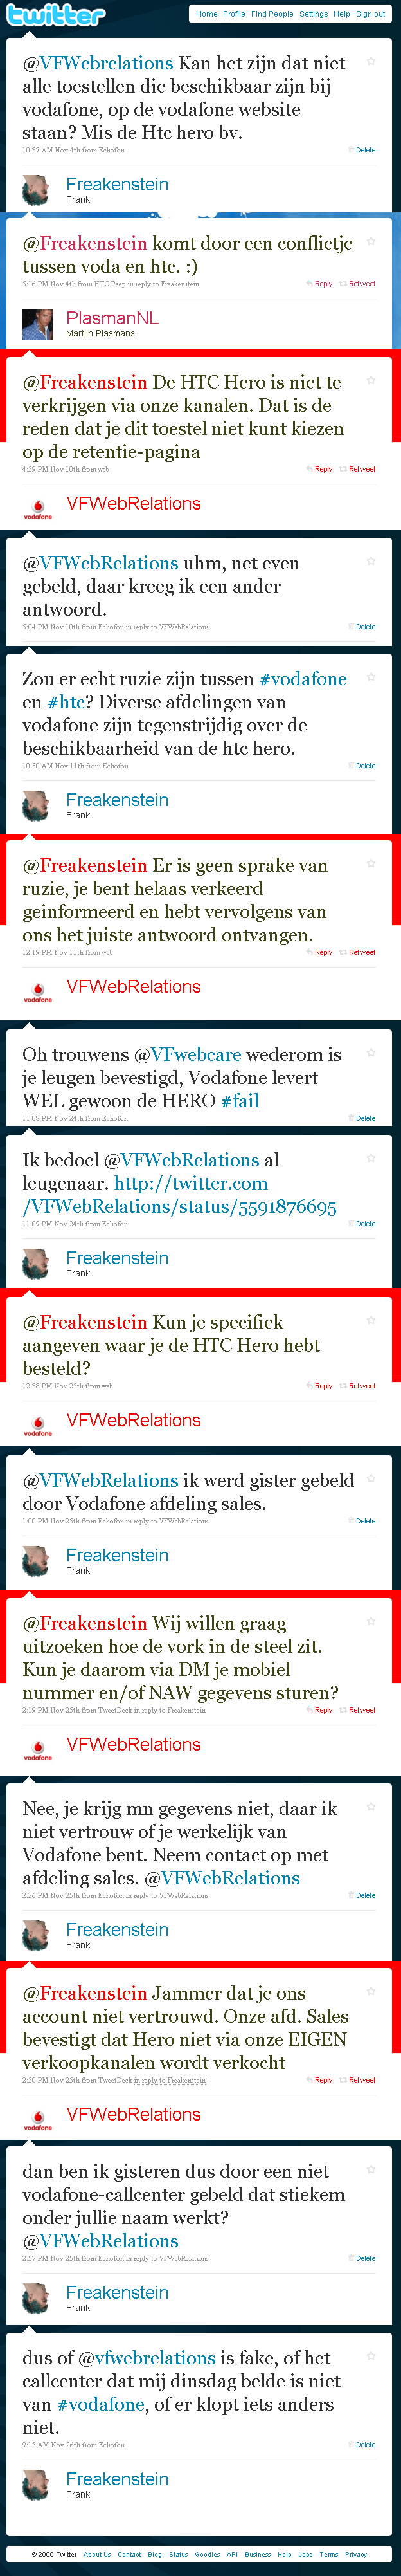 Brief aan Vodafone over storingen en twitter